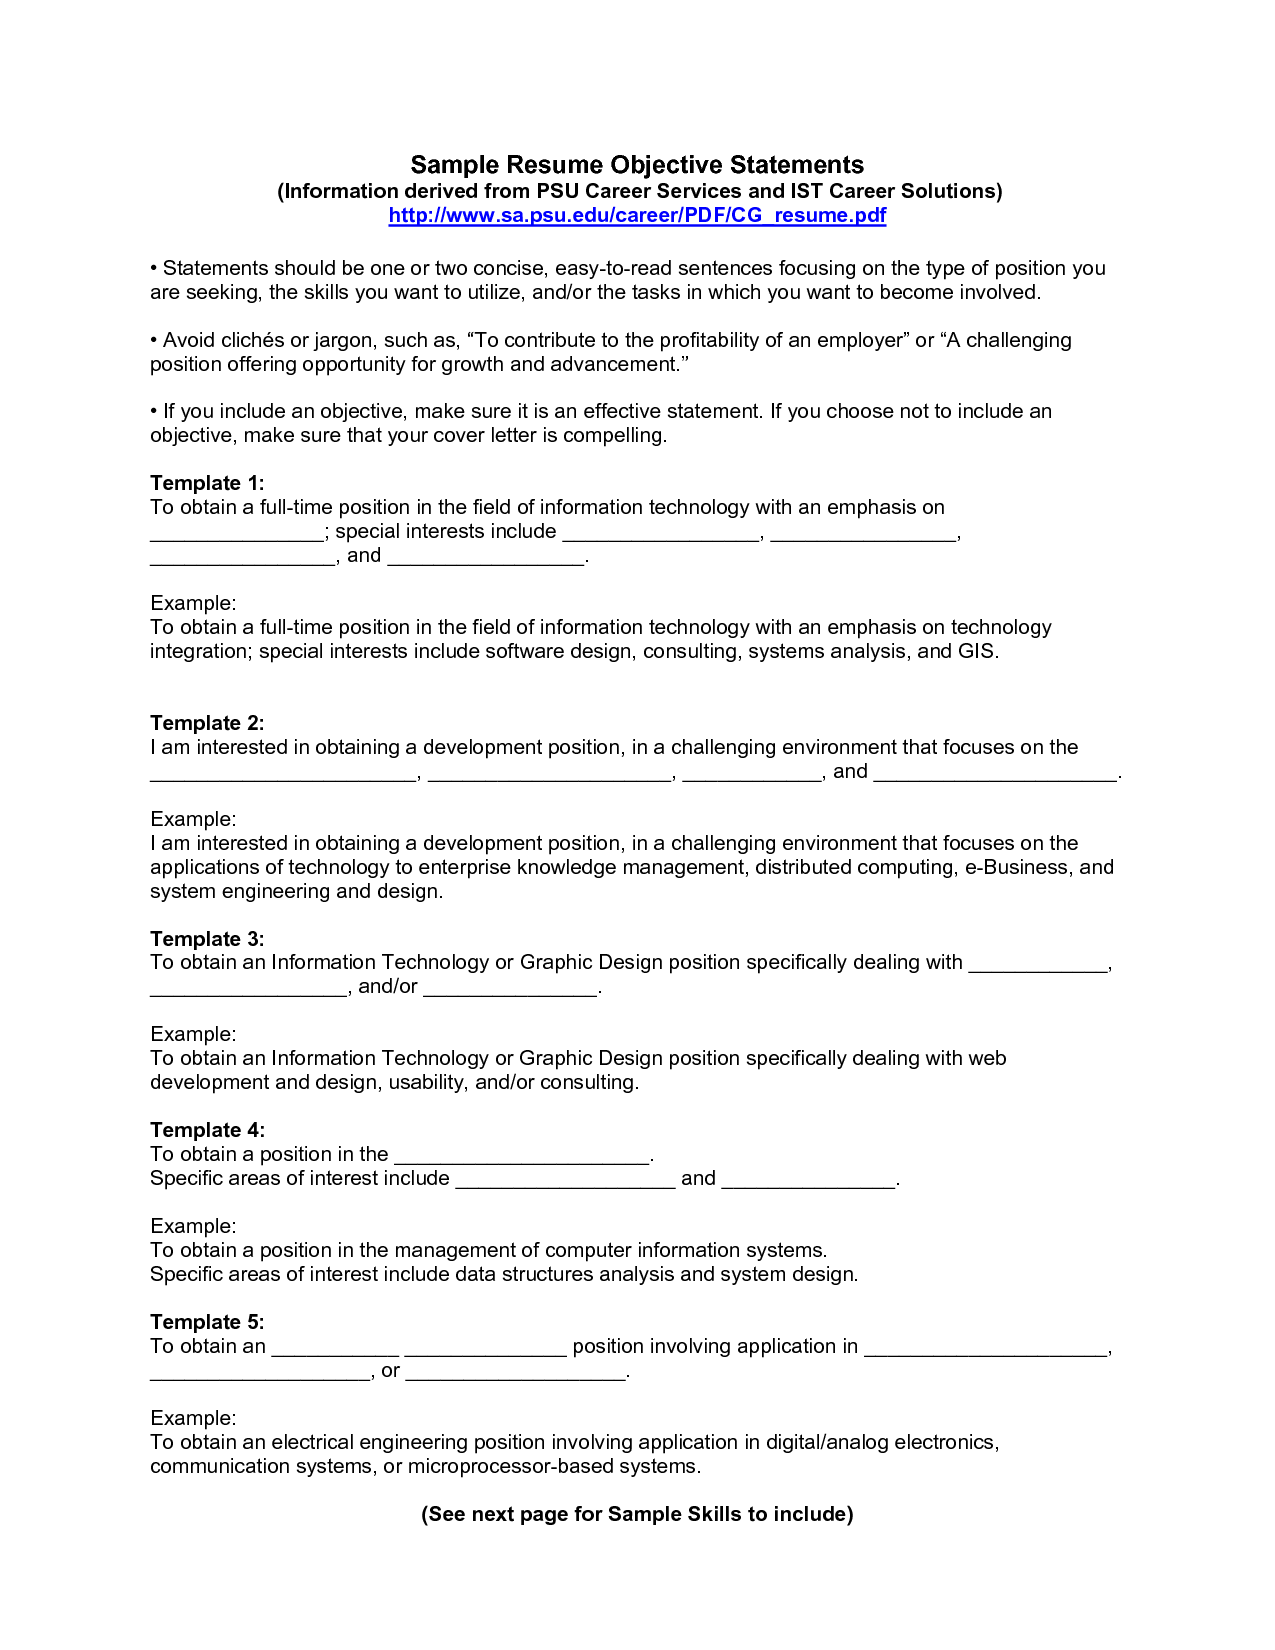 Sample Objective Statements For Resumes Resume Objective Statement For Teacher  Httpwww.resumecareer .